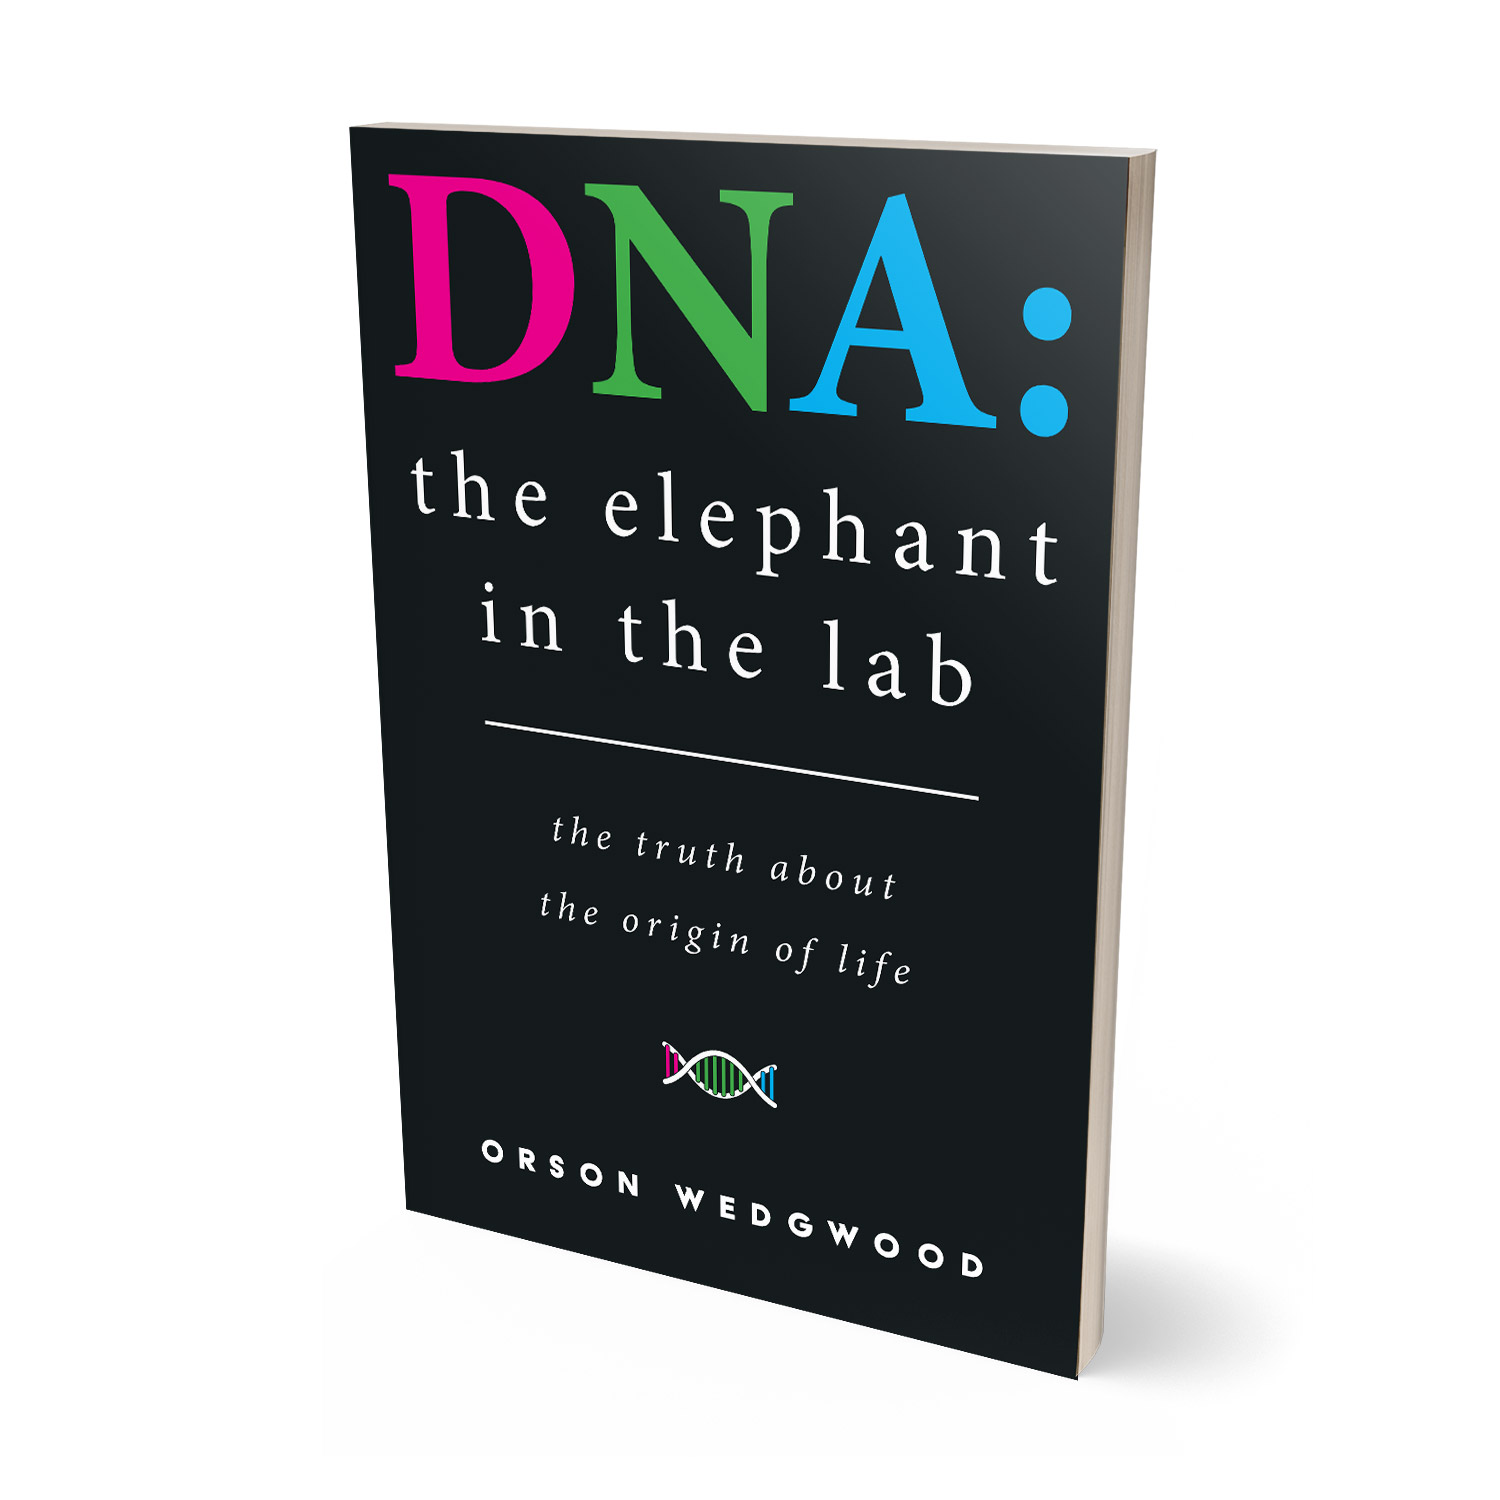 'DNA: The Elephant In the Lab' is a science and faith meditation on the origins of life. The author is Orson Wedgwood. The book cover & interior design is by Mark Thomas. To learn more about what Mark could do for your book, please visit coverness.com.